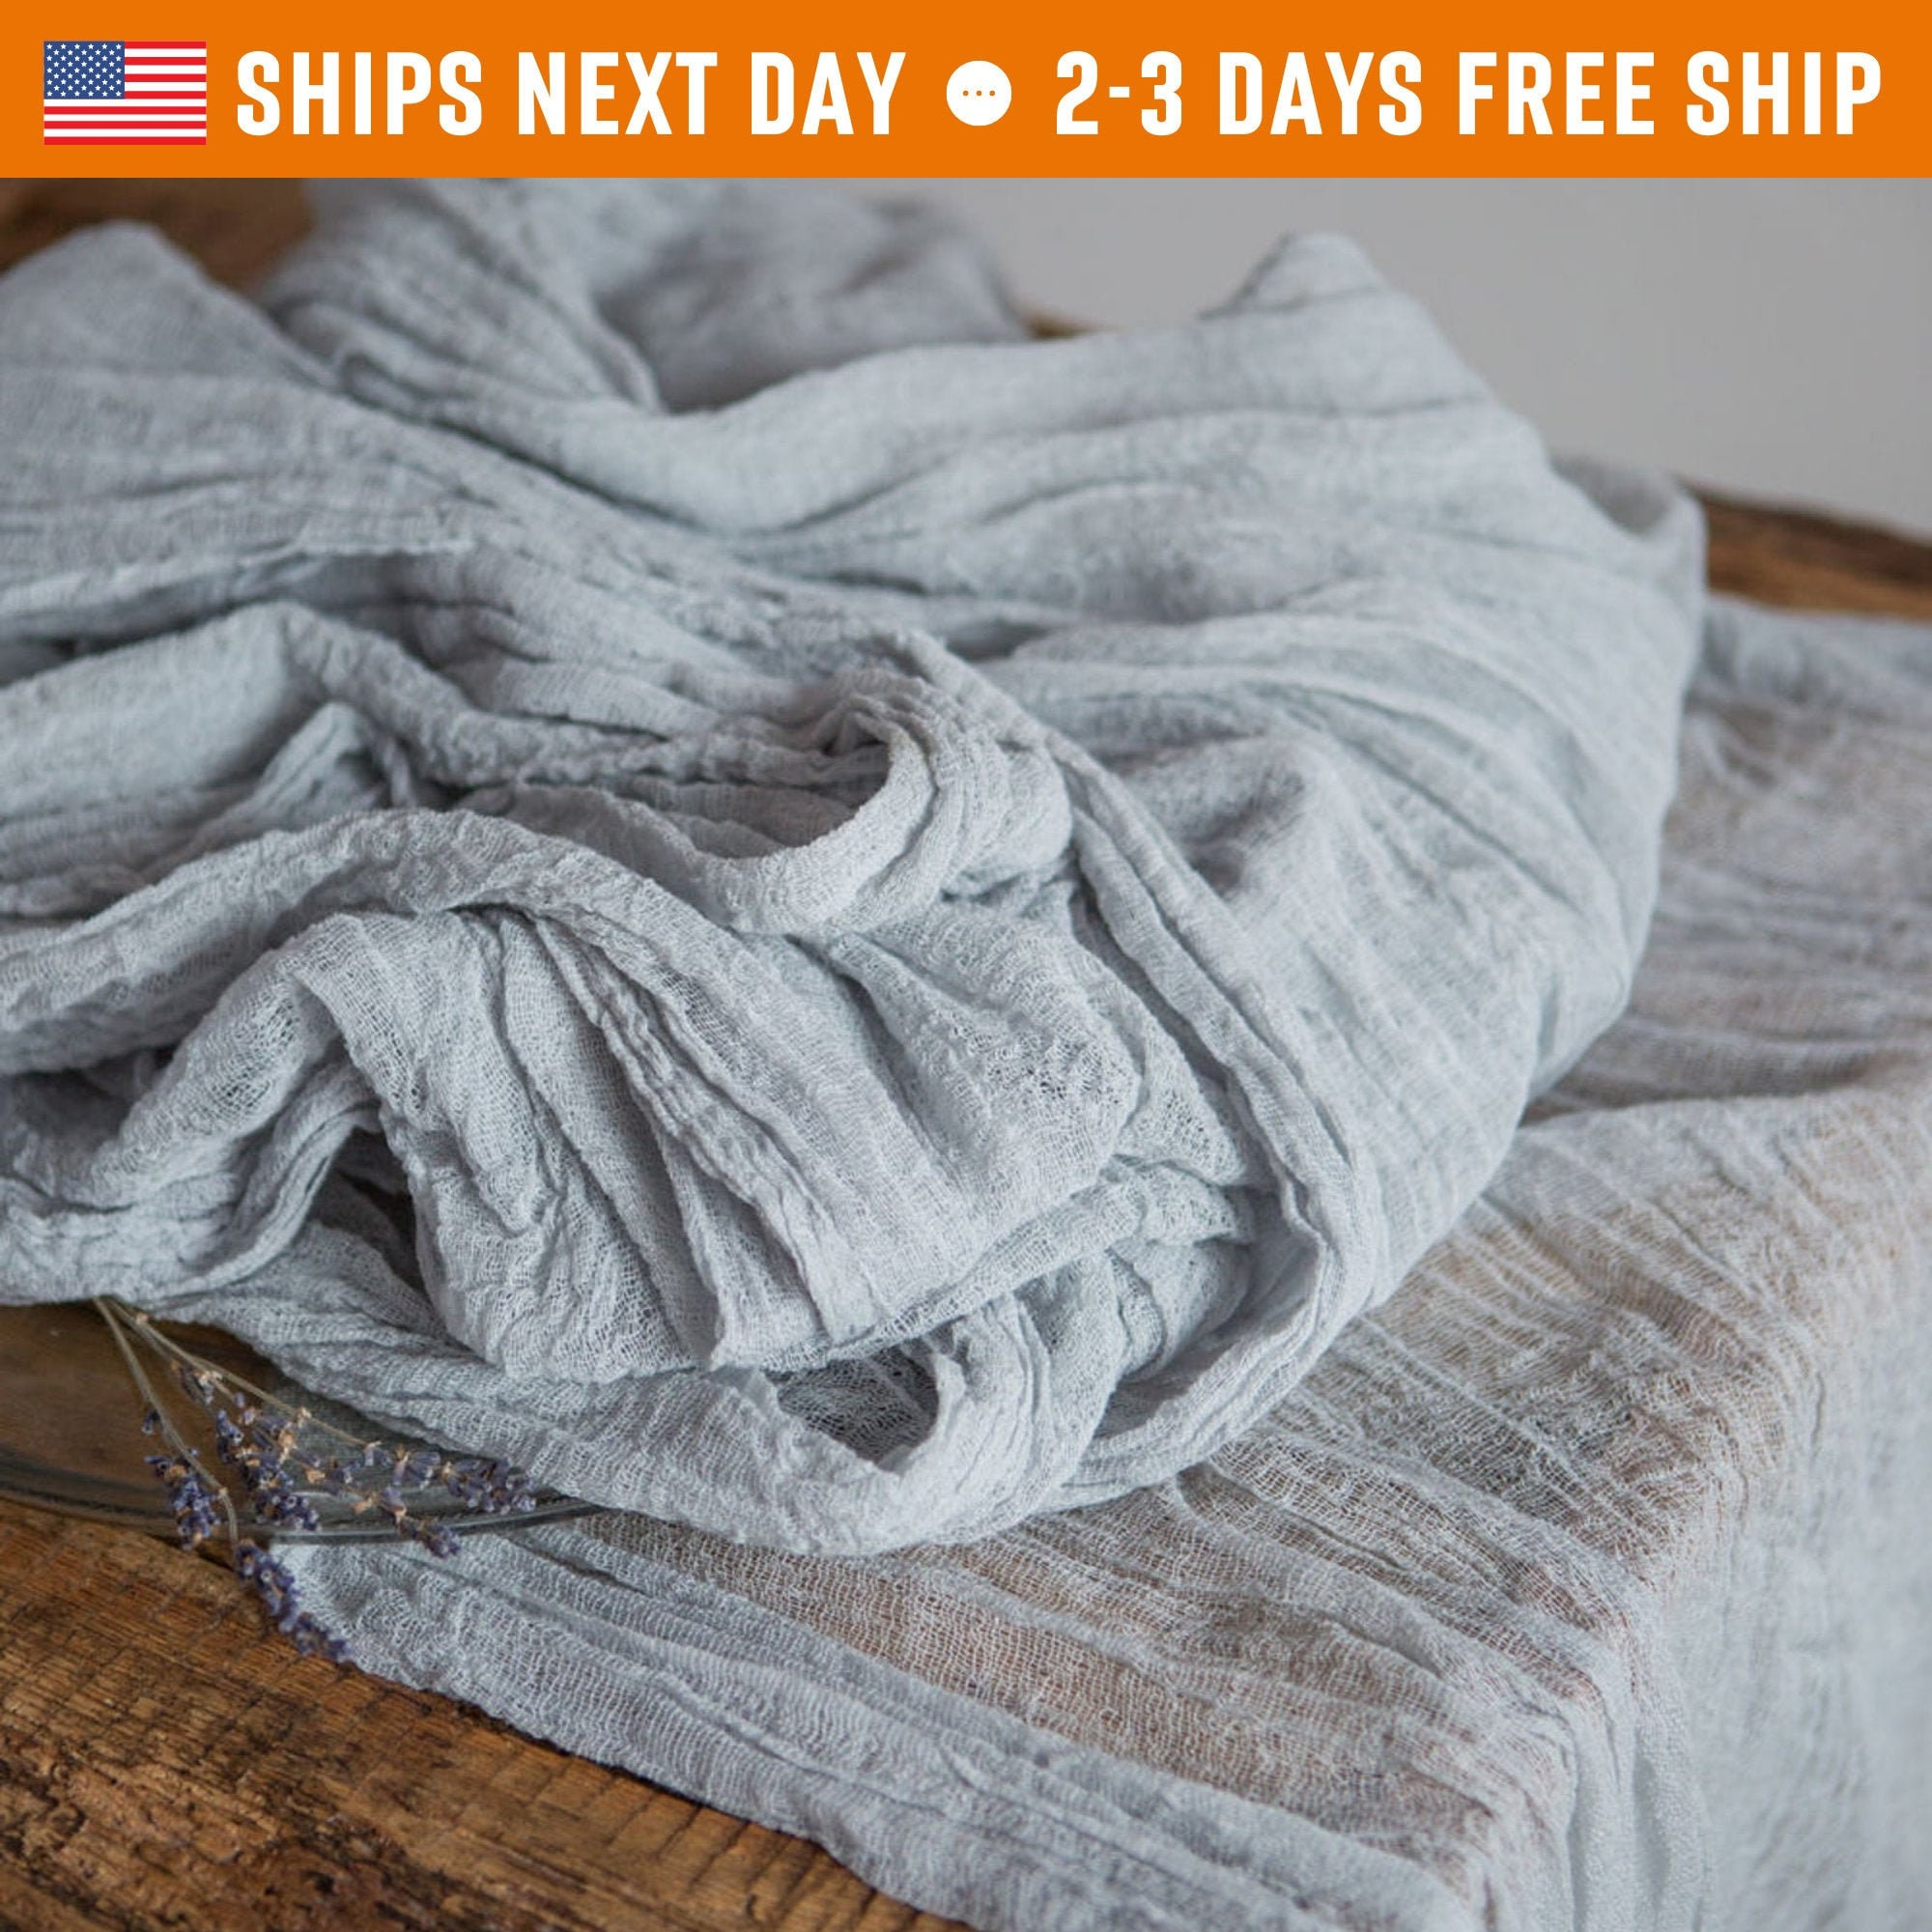 Newborn Photography Props Cheesecloth Photo Wrap Hand Dyed Cheese Cloth Cotton Scrim Knit Gauze Table Runner Nuno Felting Fabric Kit